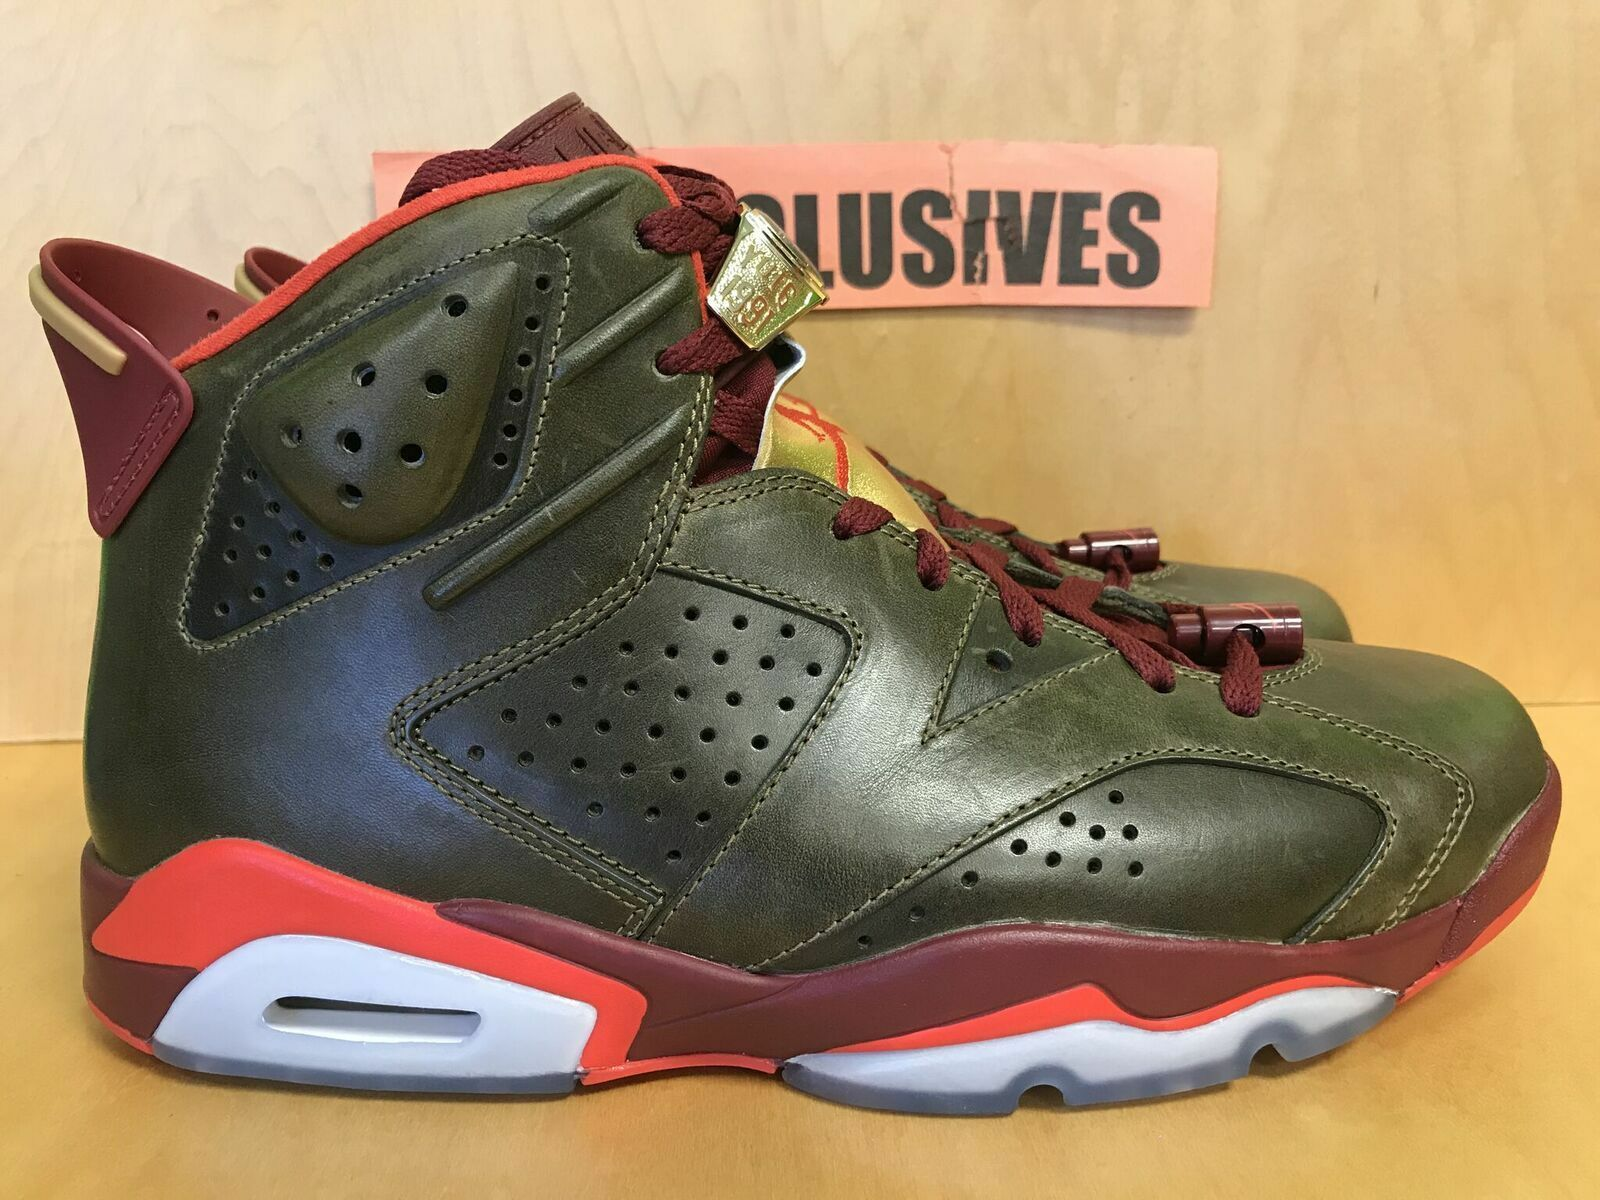 Nike Air Jordan VI Retro 6 Cigar Raw Umber Team Red-Metallic 384664-250 Size 10